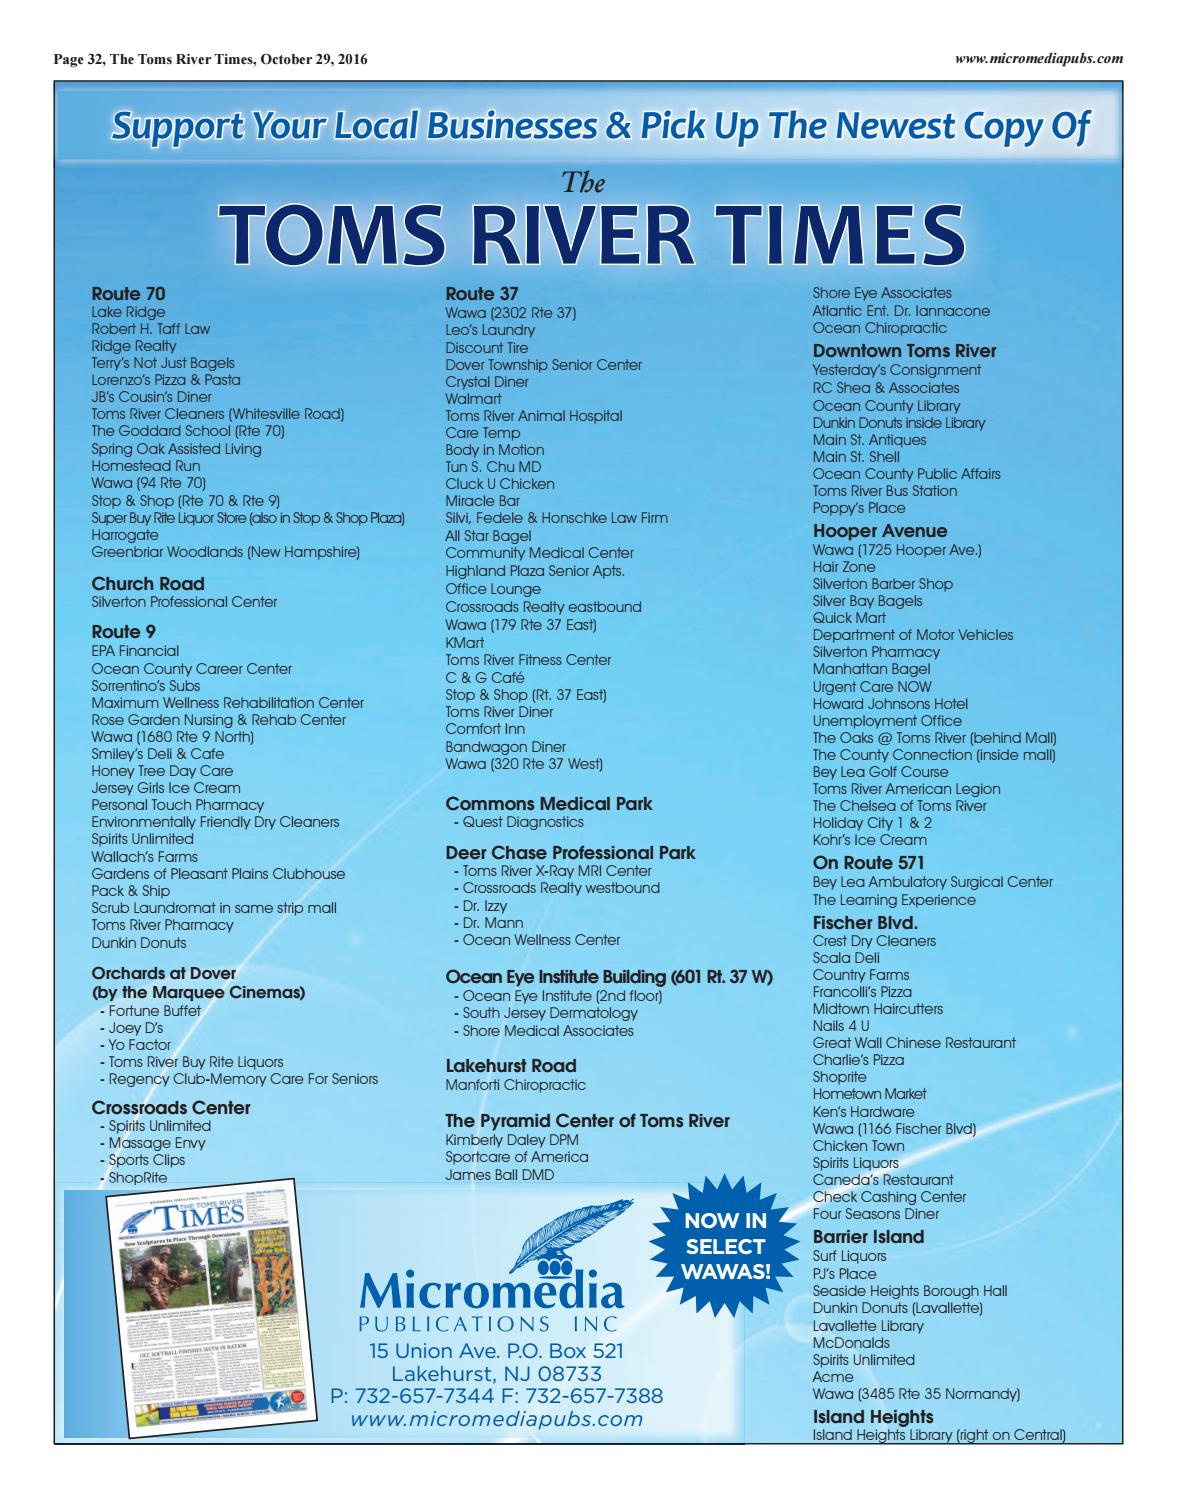 2016 10 29 The Toms River Times By Micromedia Publications Issuu